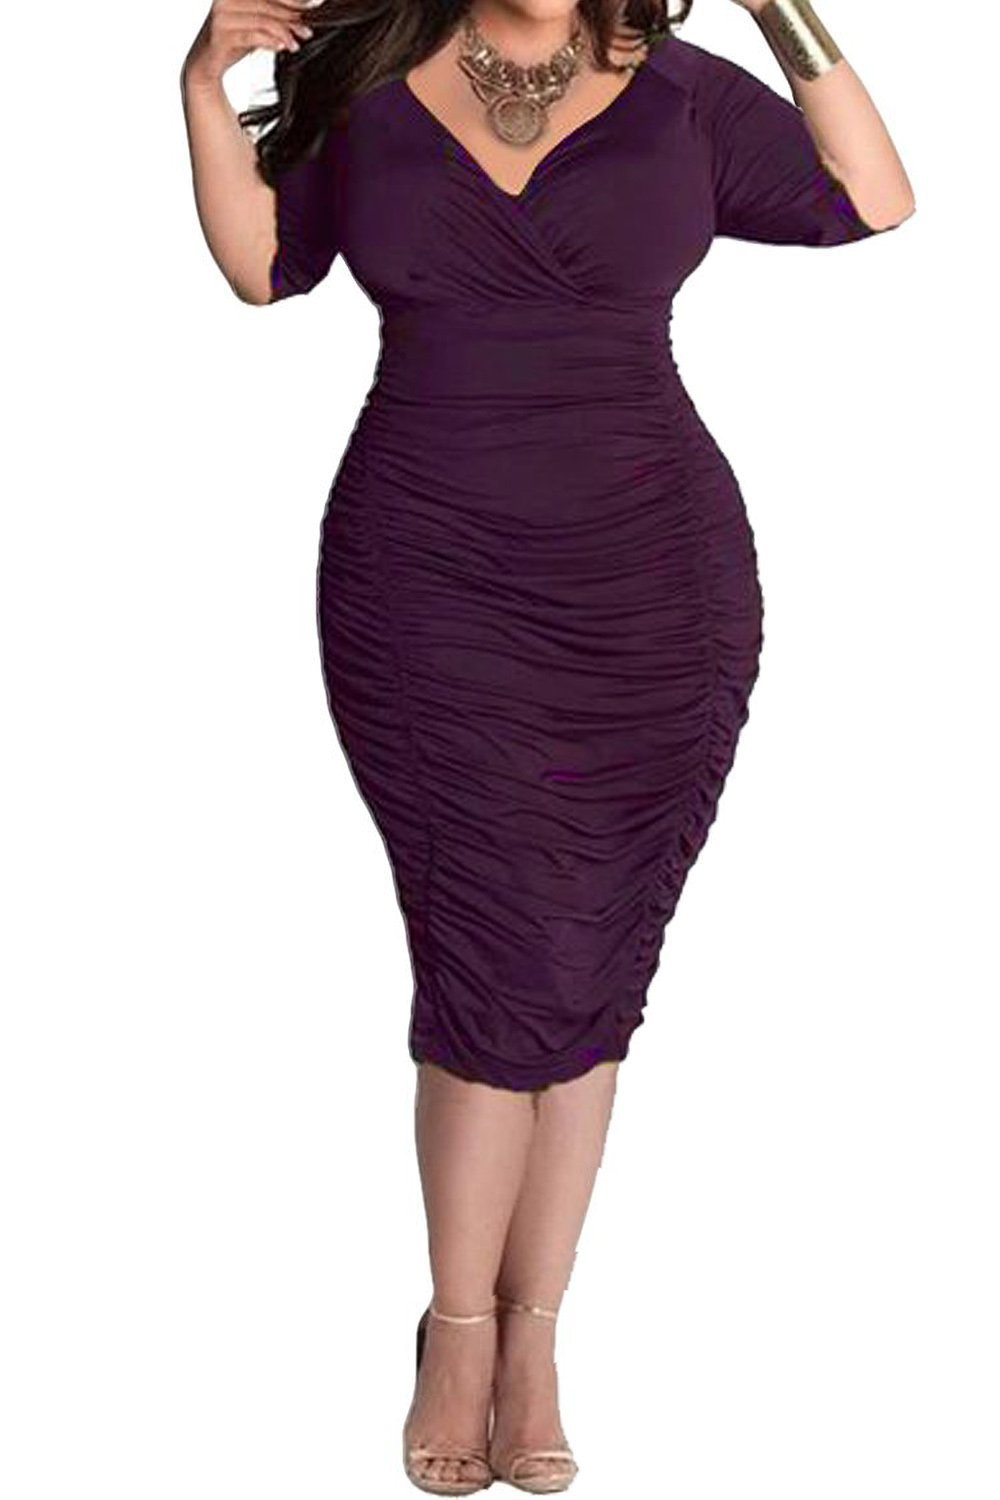 POSESHE Womens V Neck Low Bust Cascading Ruffle Slim Fit Plus Size Dress